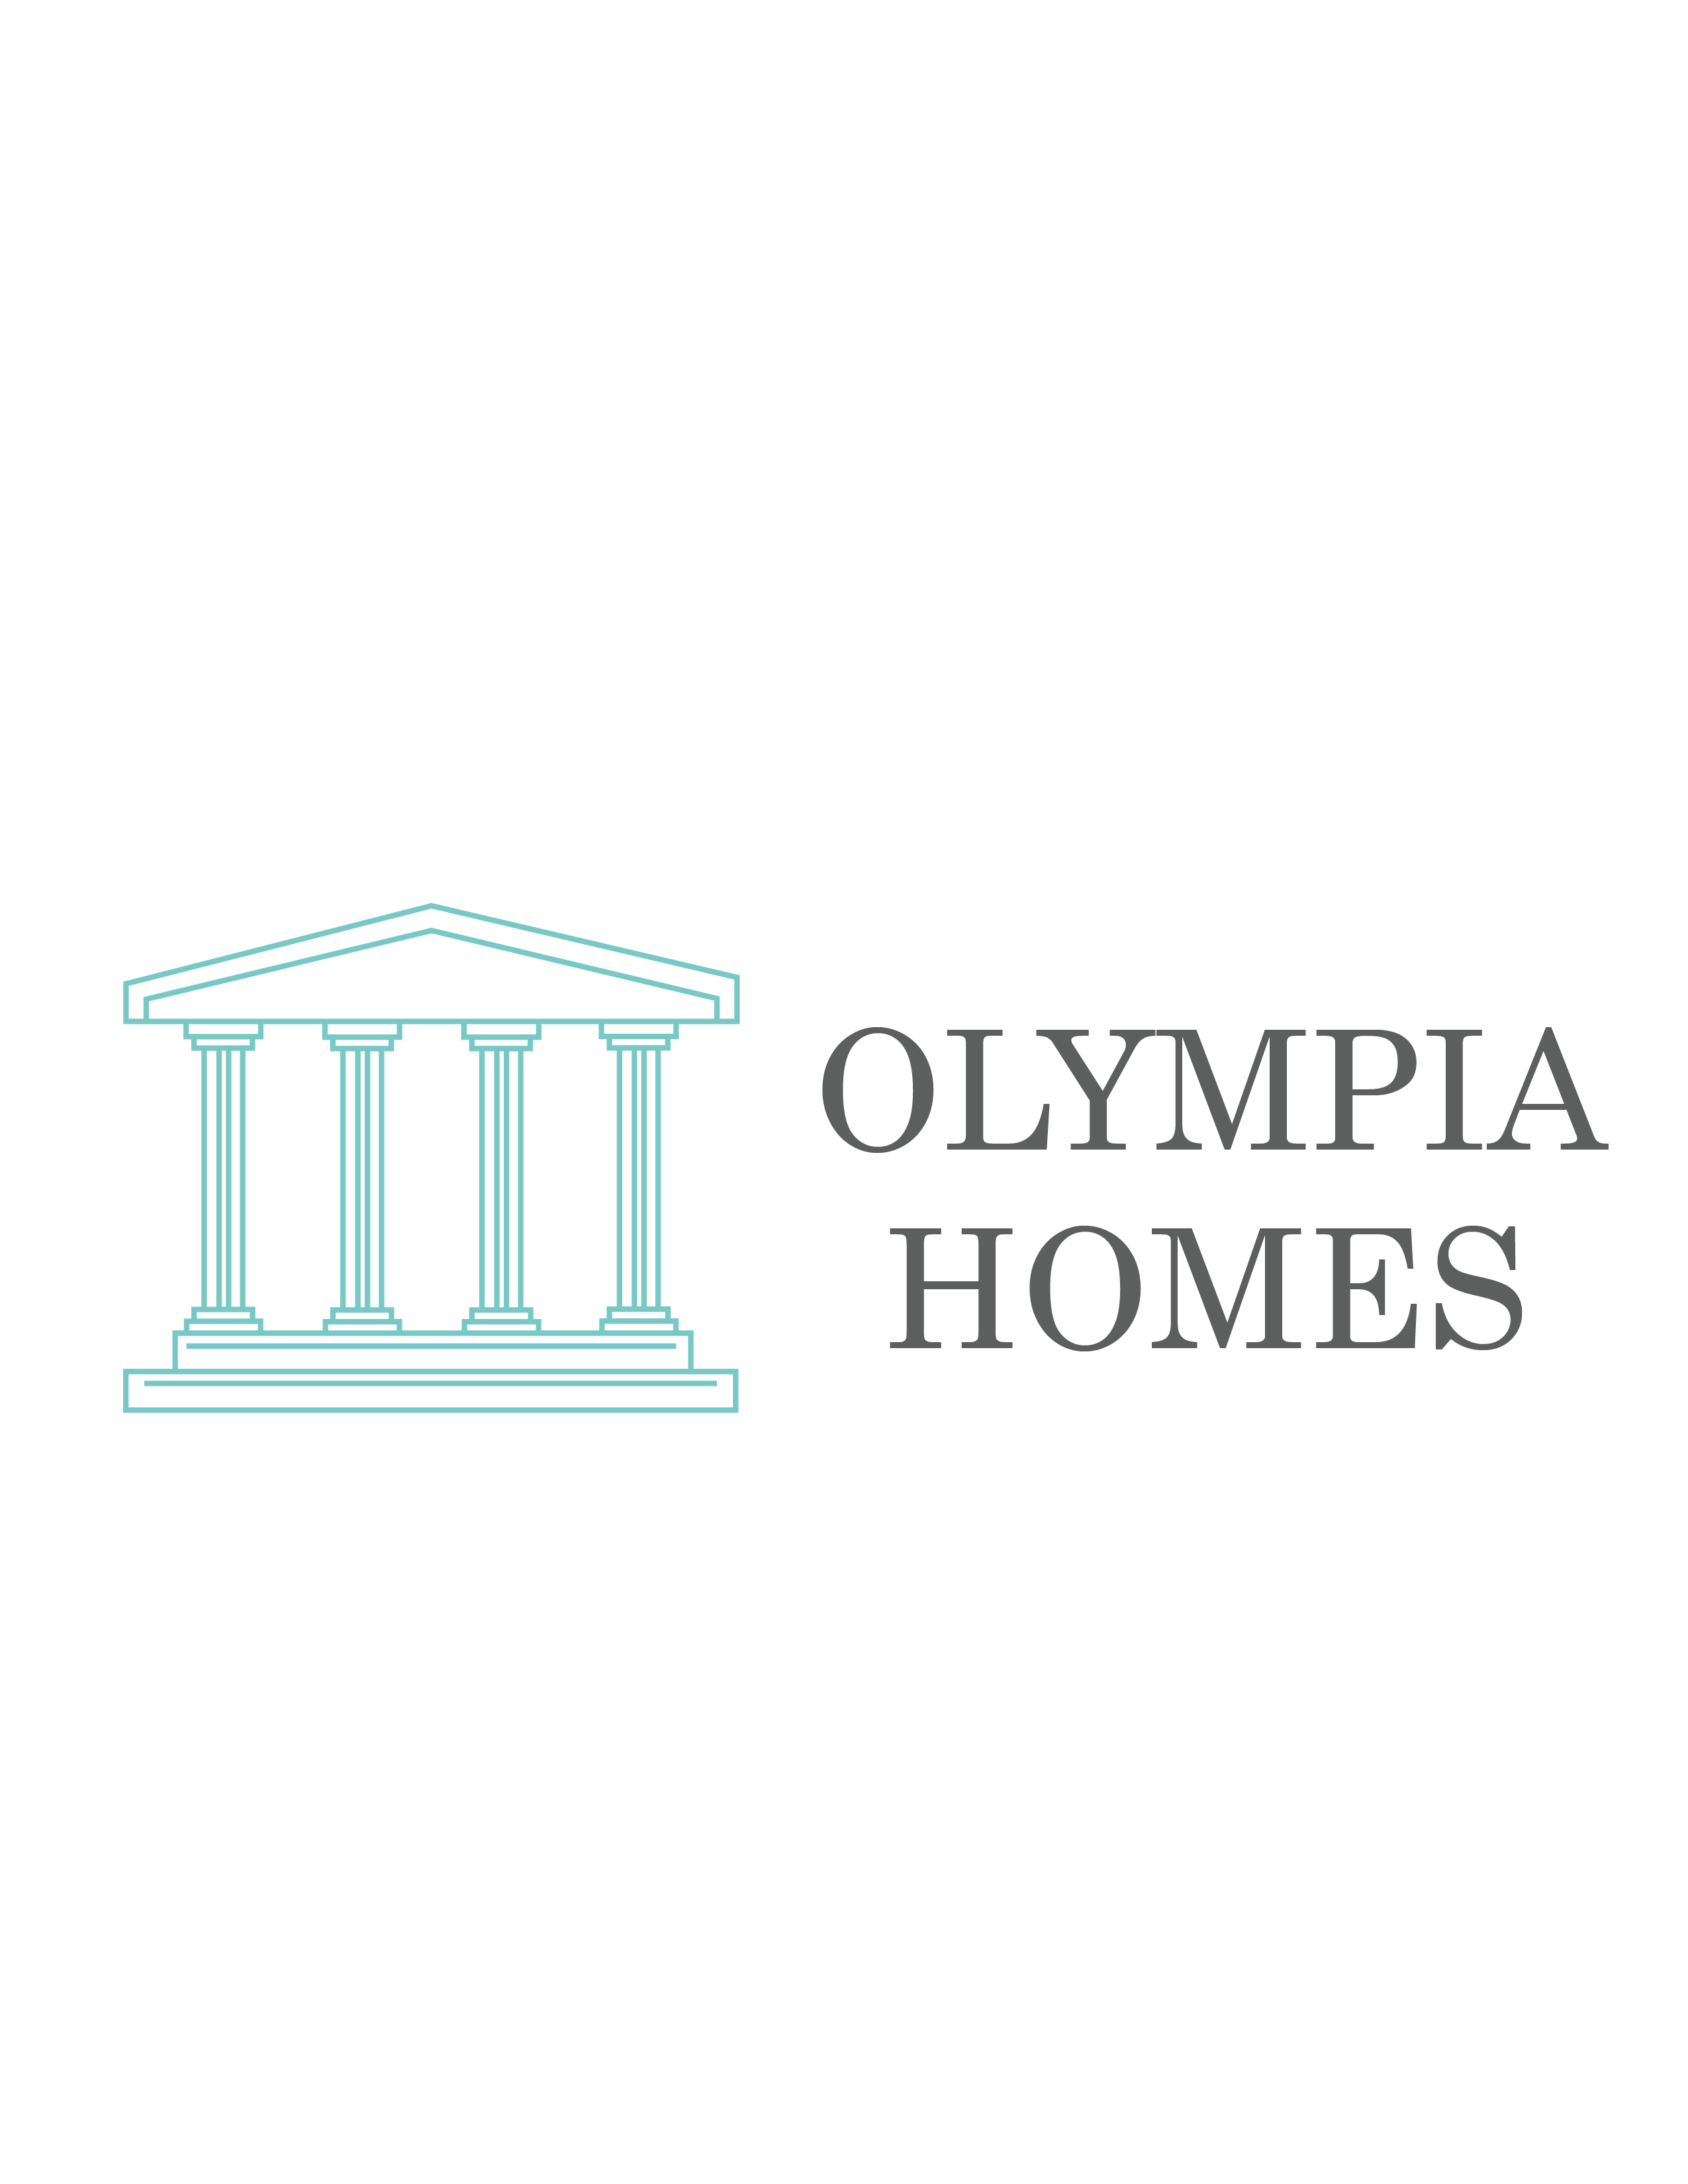 Olympia homes arnprior carleton place ottawa for Olympic homes